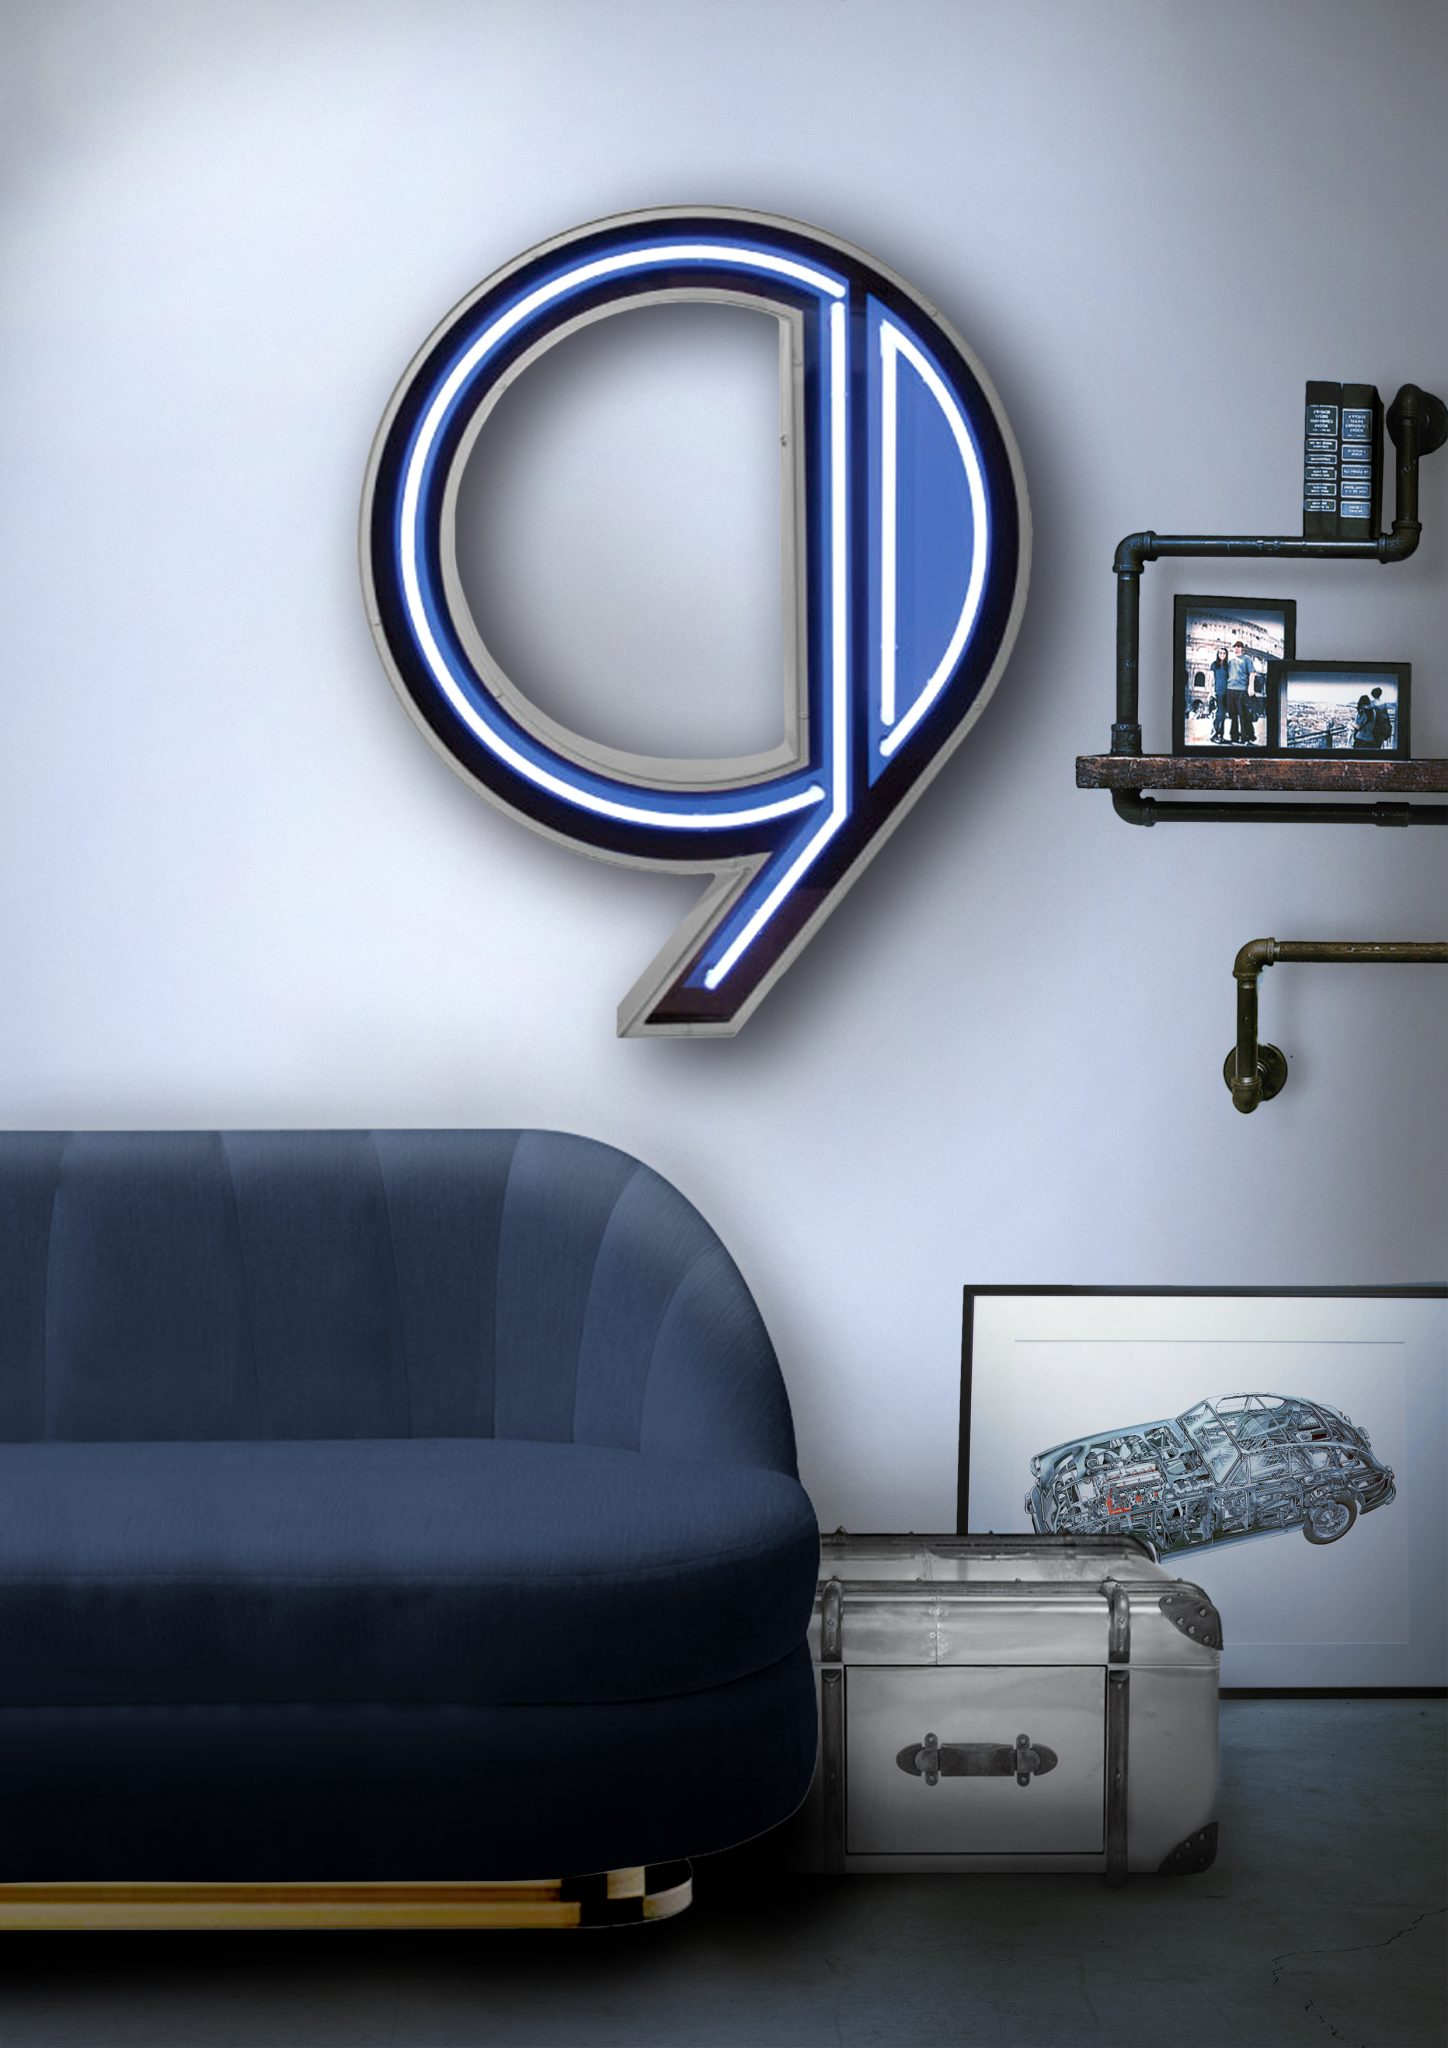 GRAPHIC LIGHTING DESIGN FOR YOUR LIVING ROOM